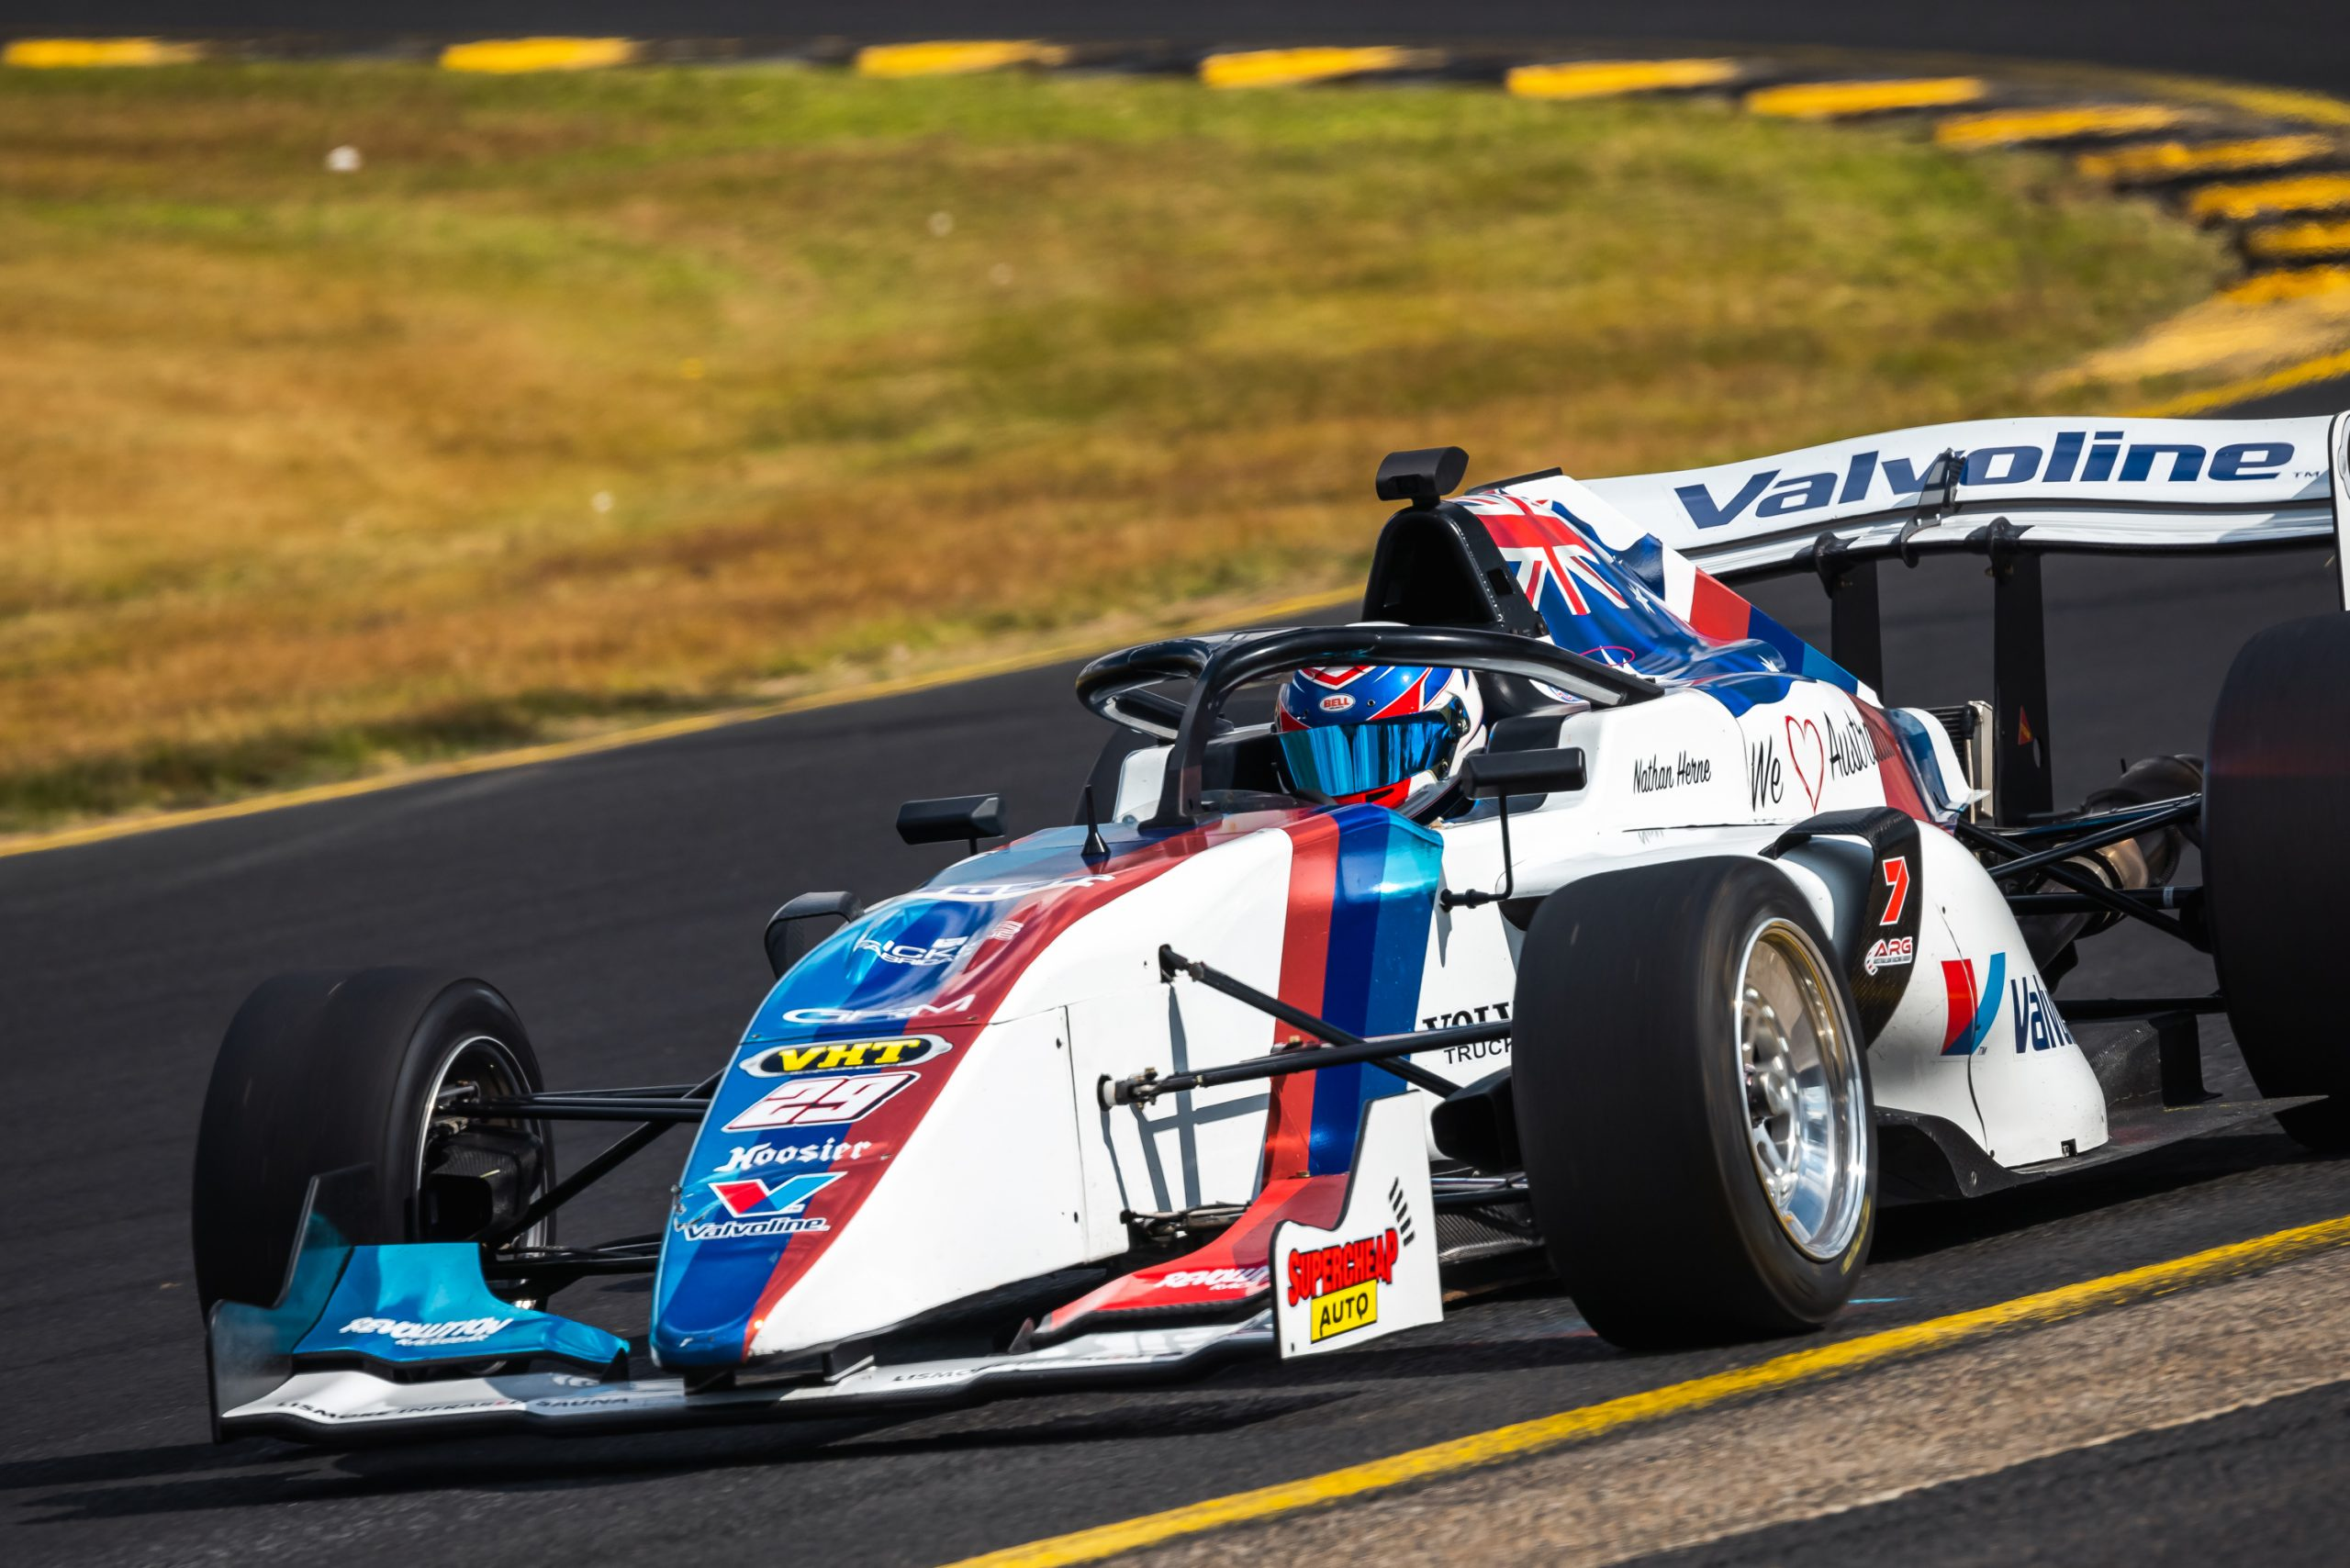 S5000 Tech Talk brought to you by Valvoline – Tyres